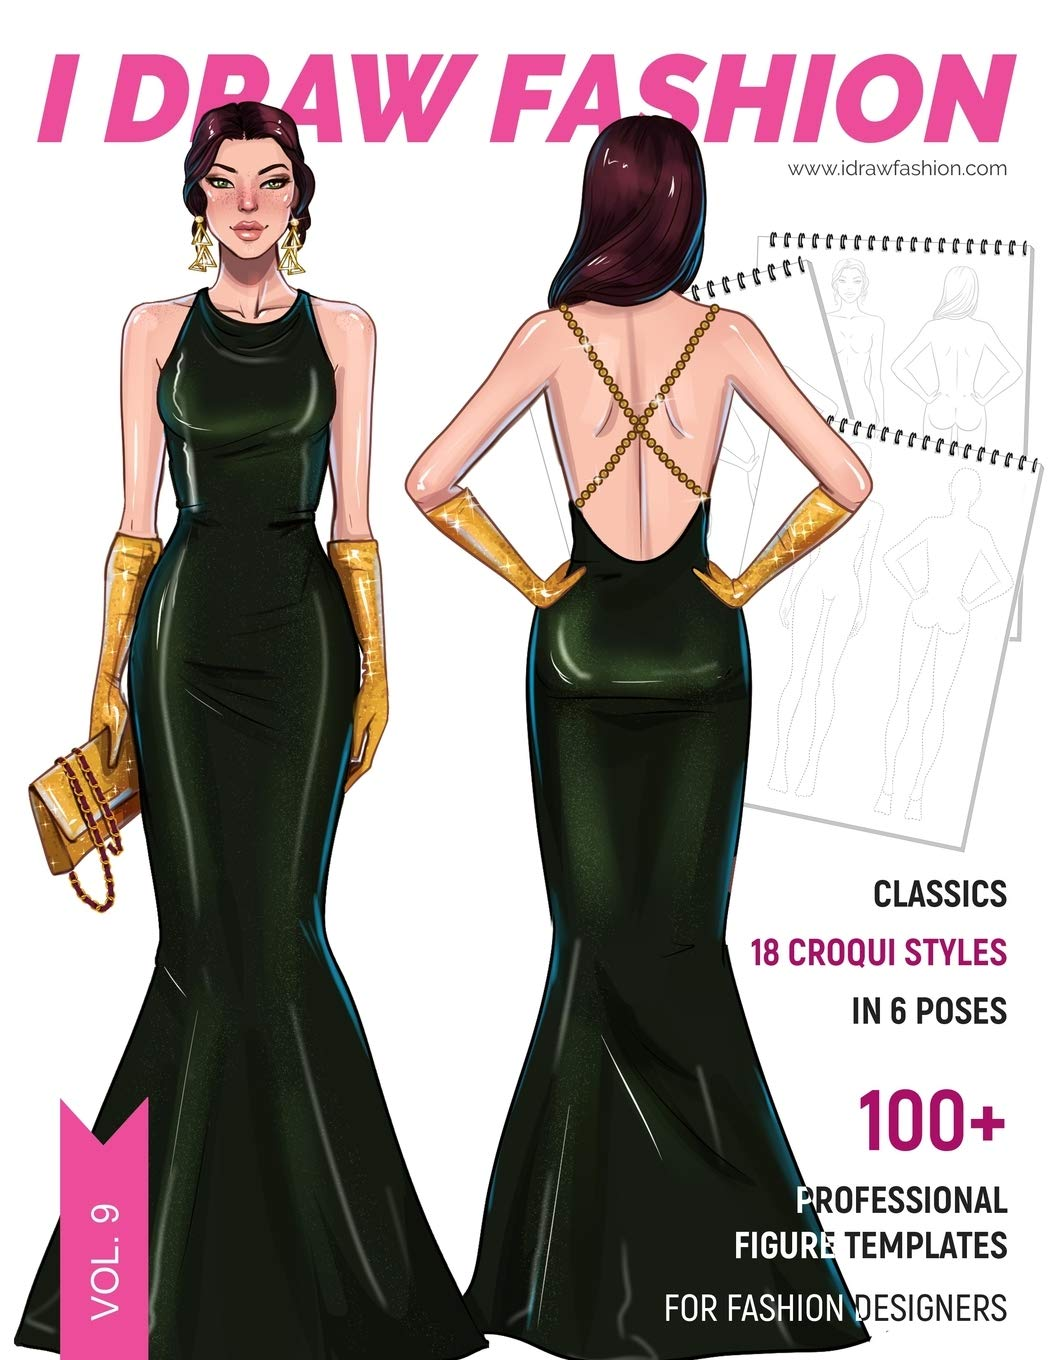 Classics 100 Professional Figure Templates For Fashion Designers Fashion Sketchpad With 18 Croqui Styles In 6 Poses Fashion I Draw 9781692562694 Amazon Com Books